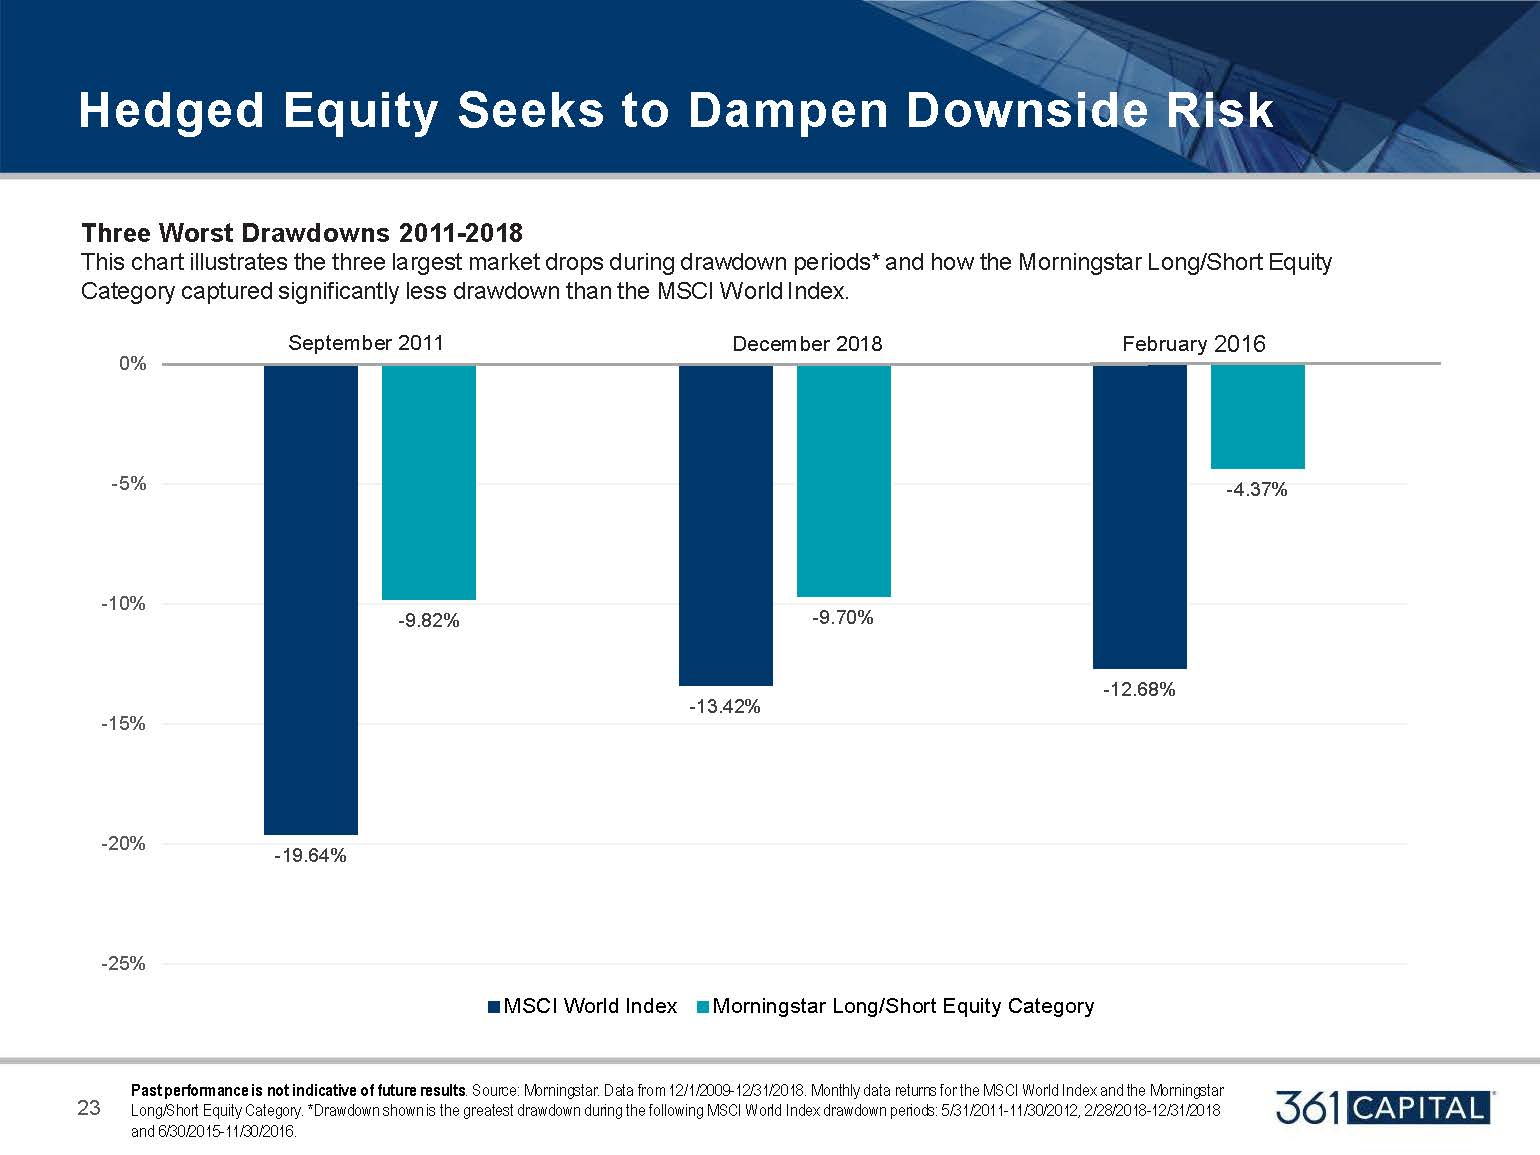 Three Worst Drawdown from 2011-2018